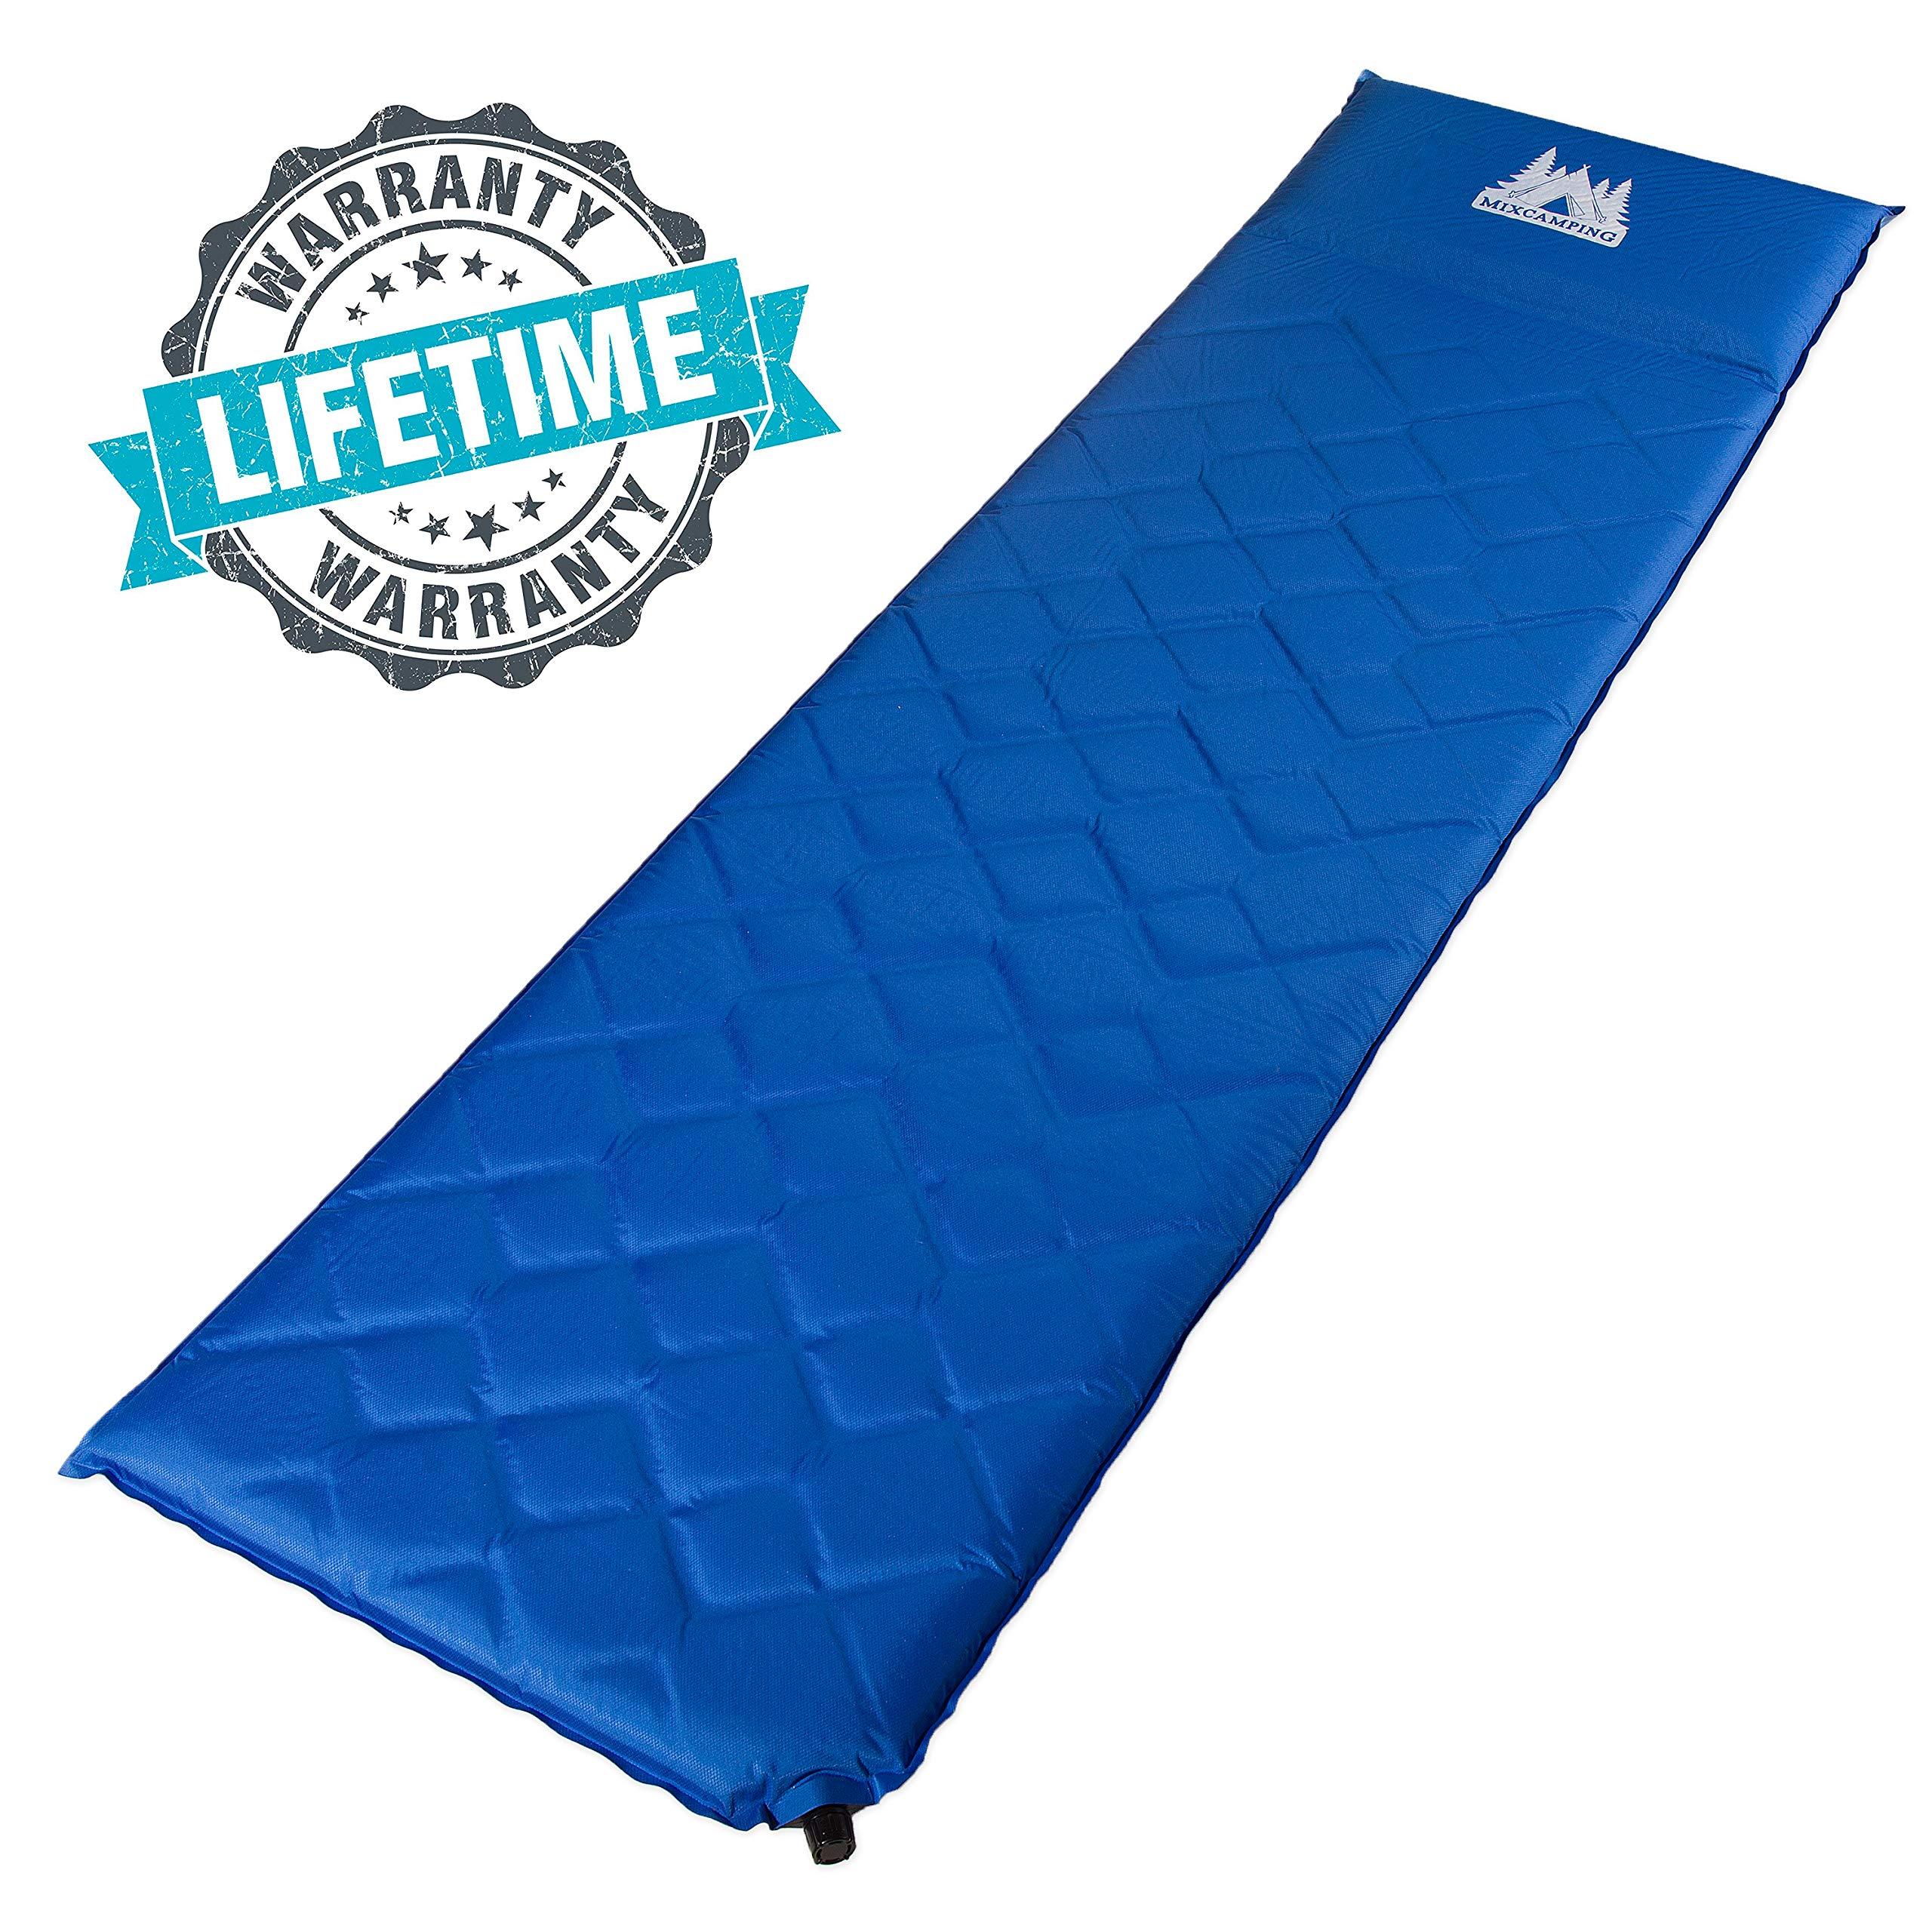 Self Inflating Sleeping Pad - High Insulation Foam Lightweight Camping Mattress for Backpacking and Hiking by MixCamping